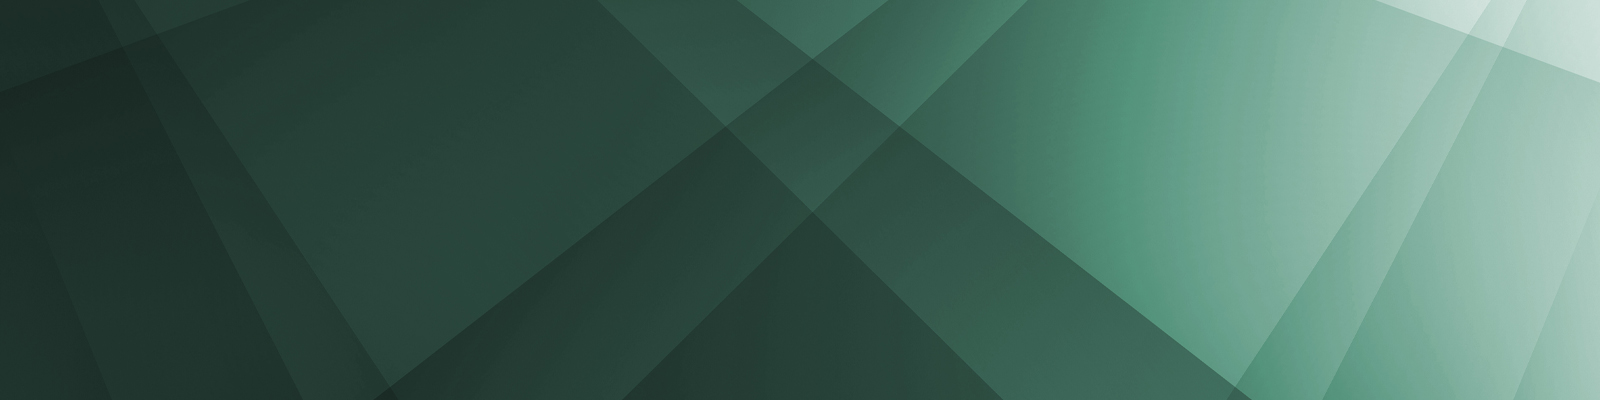 Green geometric pattern